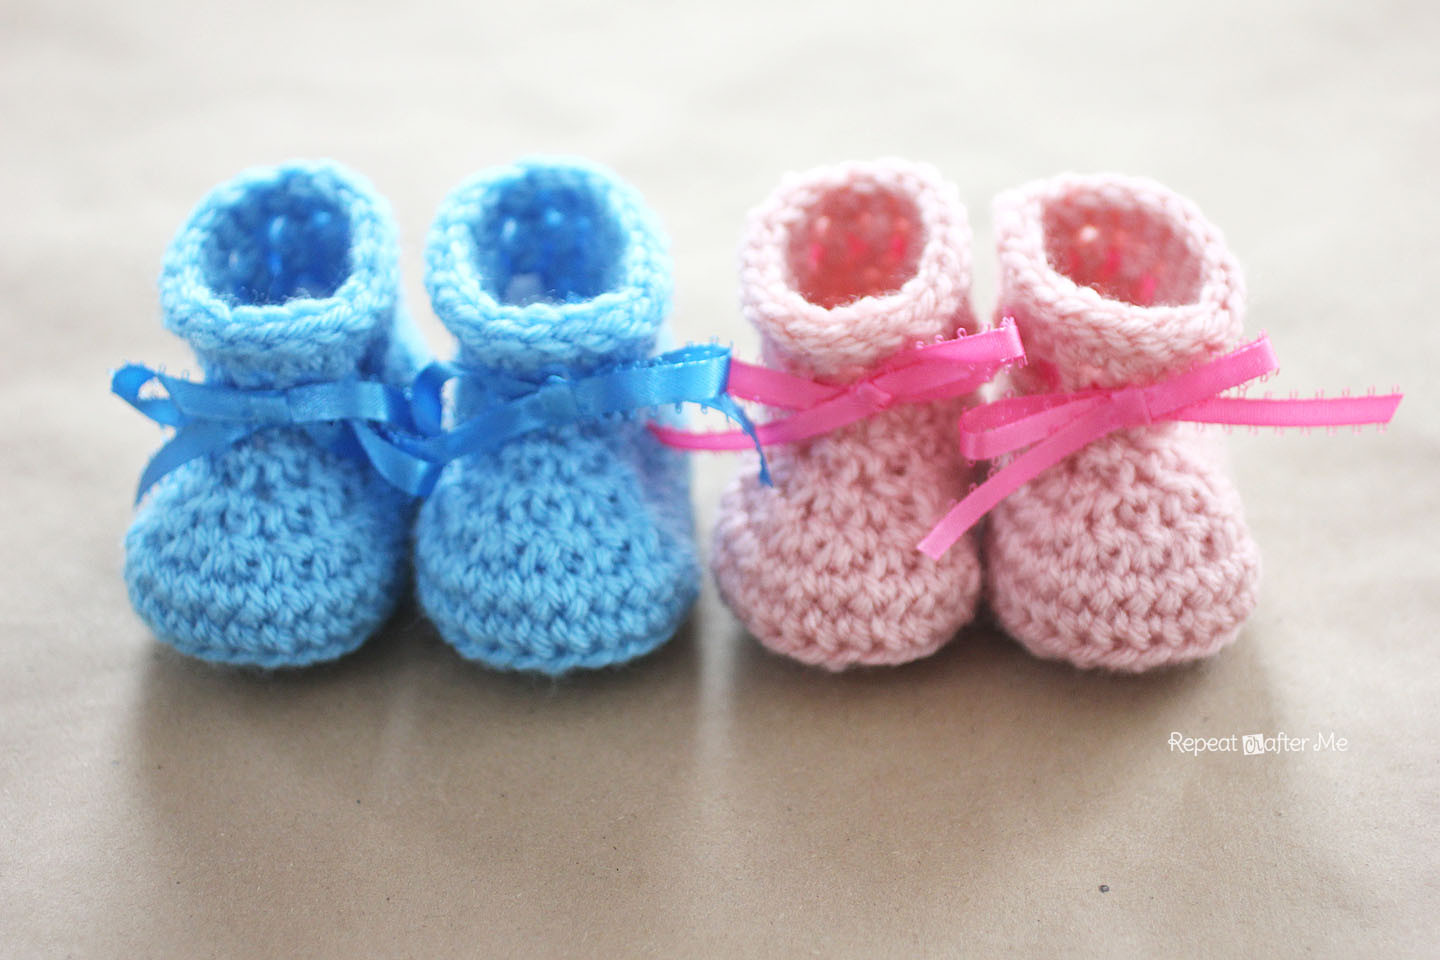 Inspirational Crochet Newborn Baby Booties Pattern Repeat Crafter Me Crochet Baby Slippers Of Marvelous 50 Images Crochet Baby Slippers